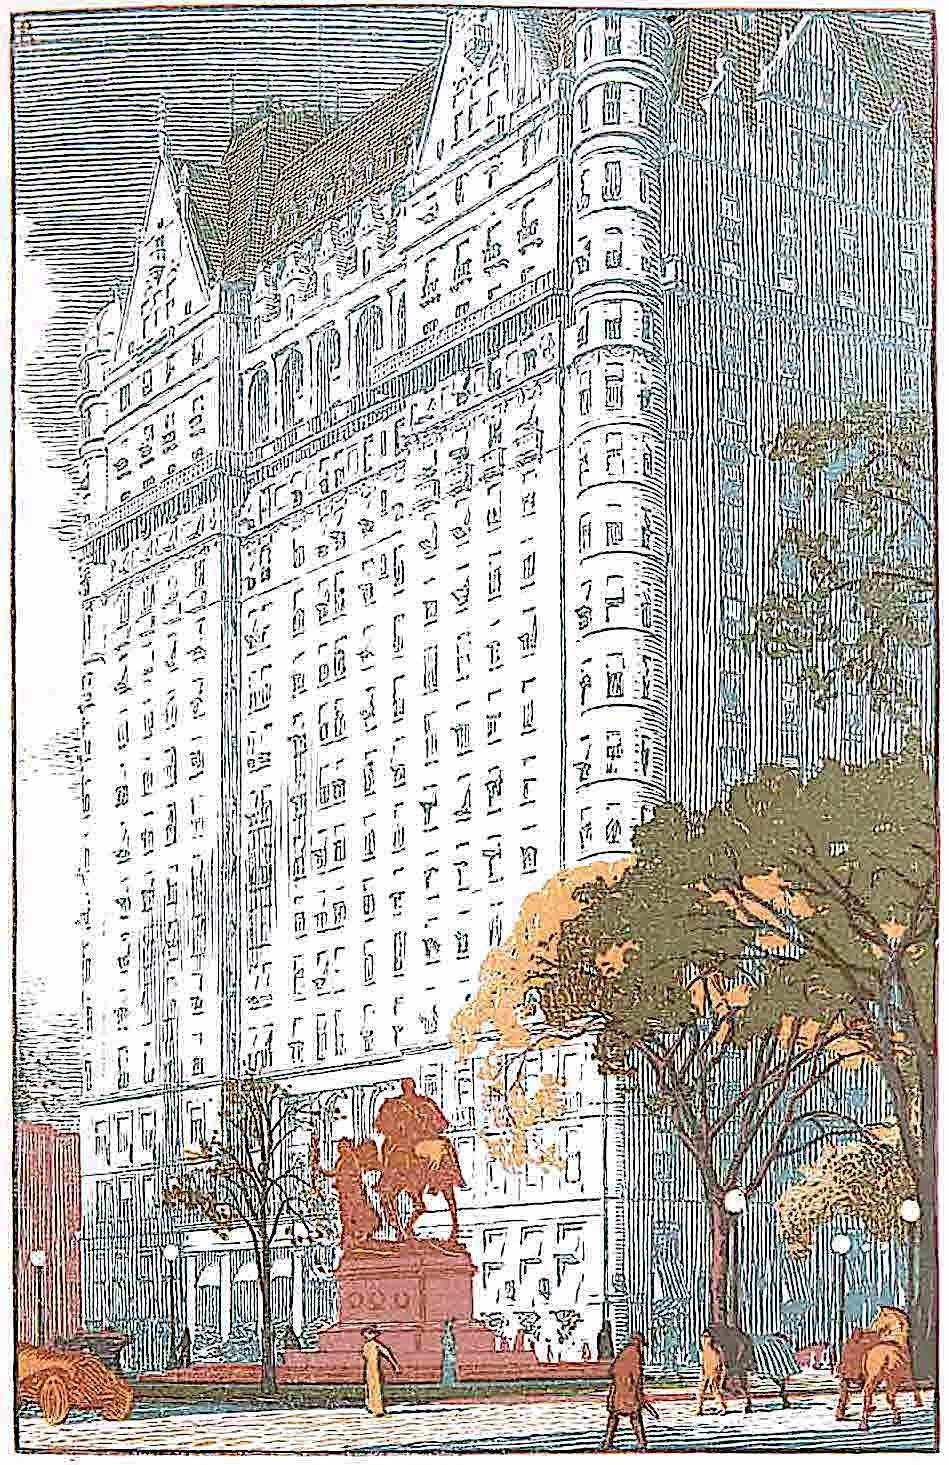 a Walter P. Eaton illustration of a giant building